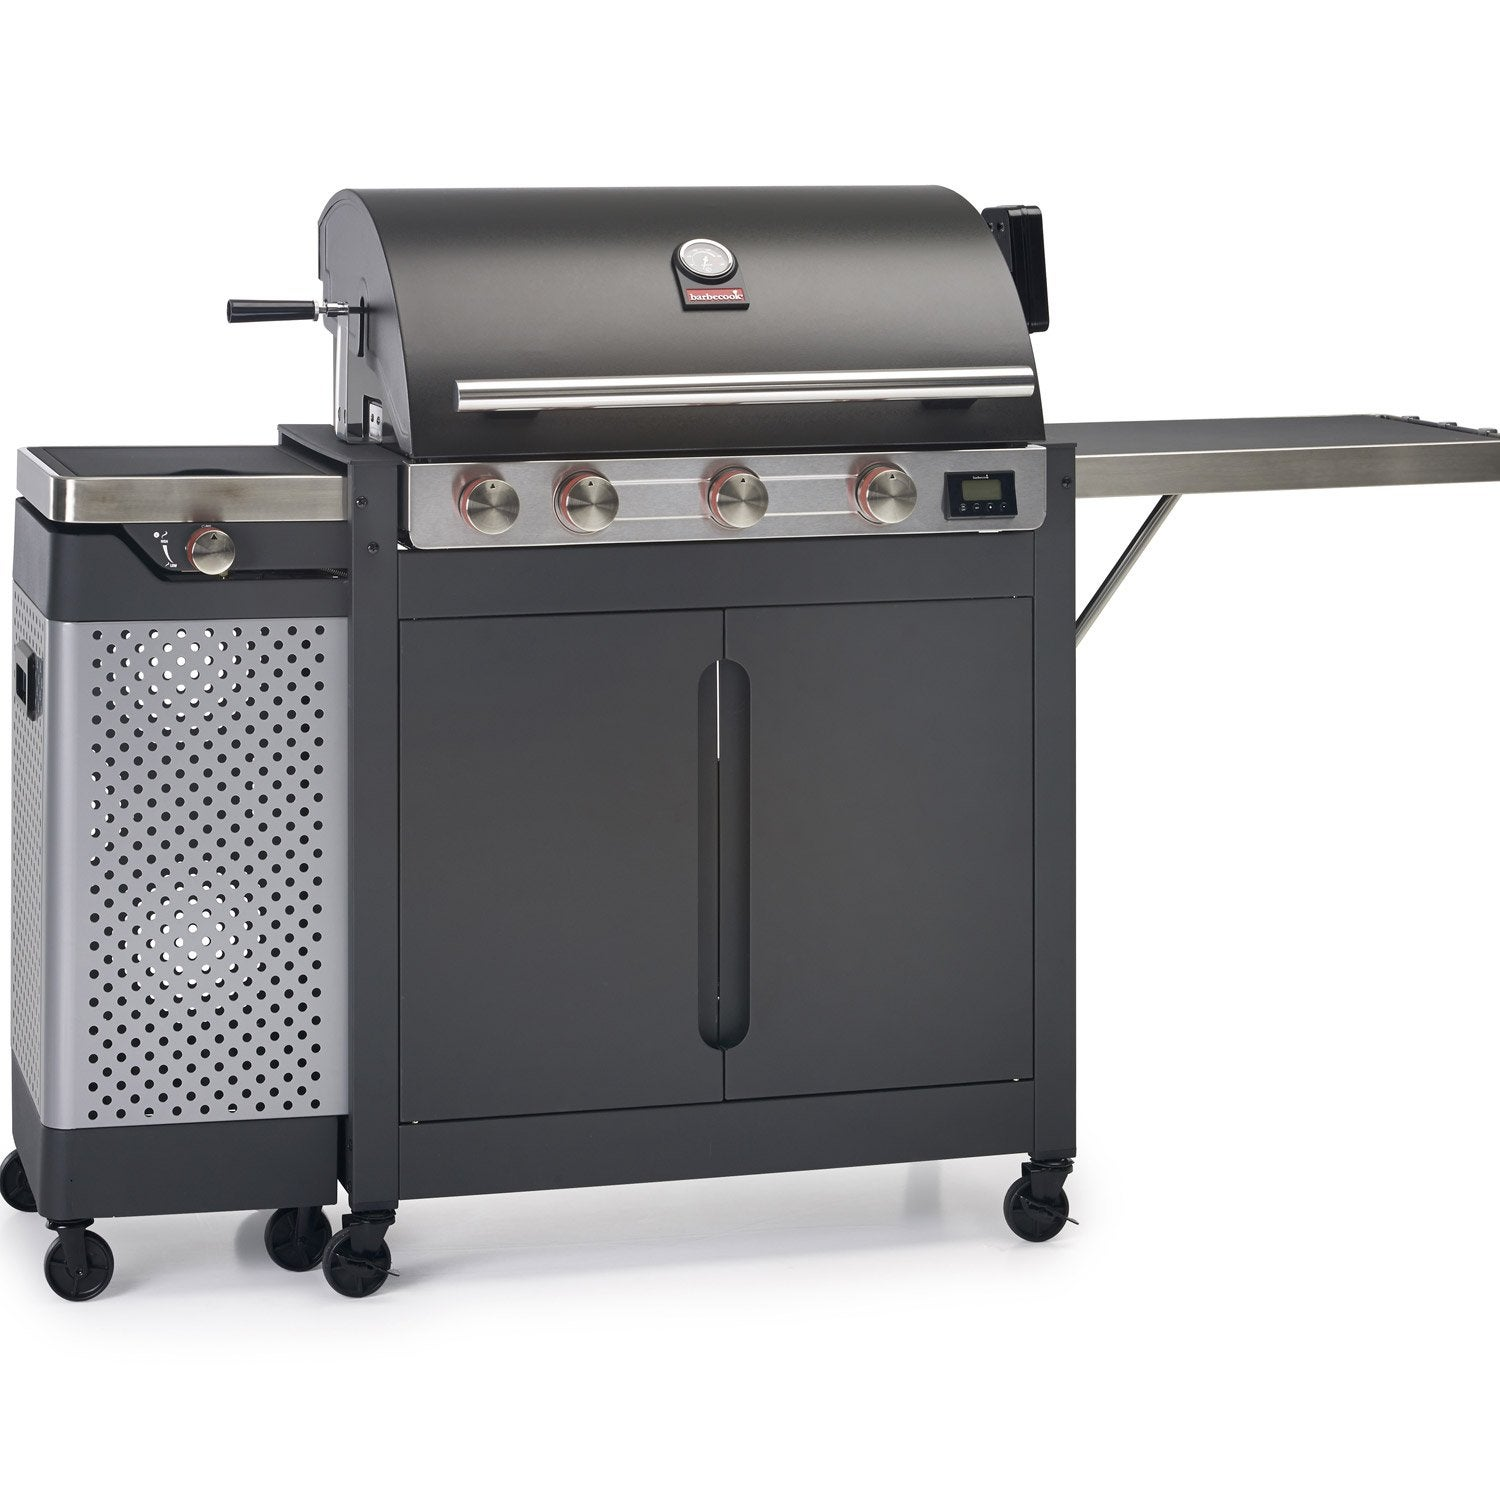 D co barbecue nok montpellier 3123 barbecue electrique boulanger barbec - Barbecue weber charbon castorama ...